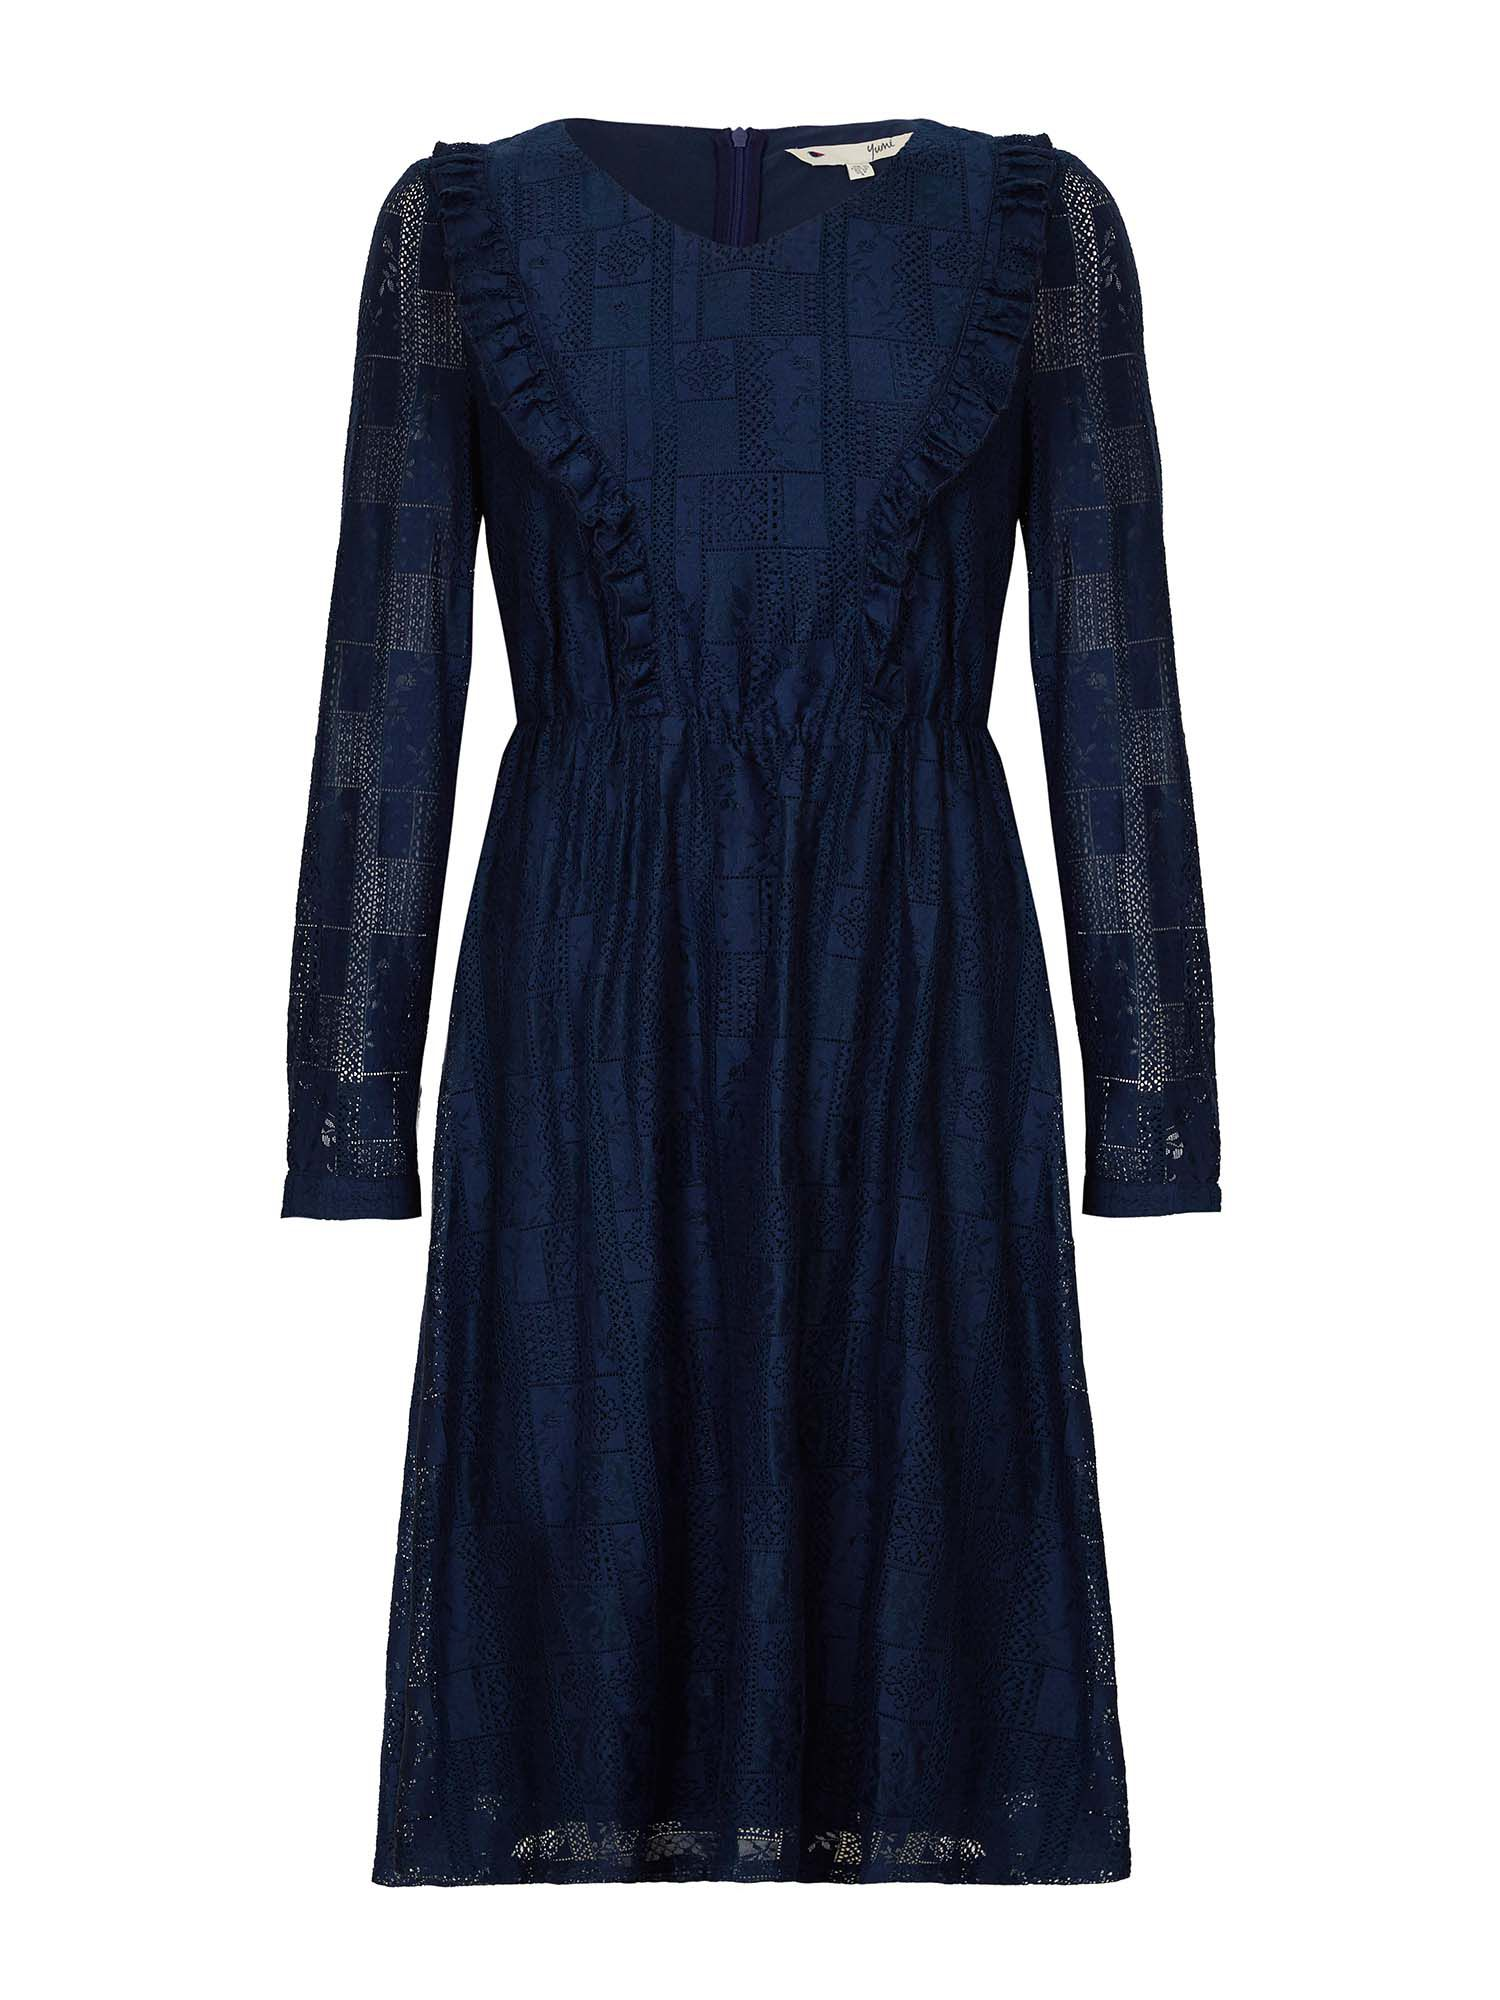 Yumi Lace Frill Dress, Blue